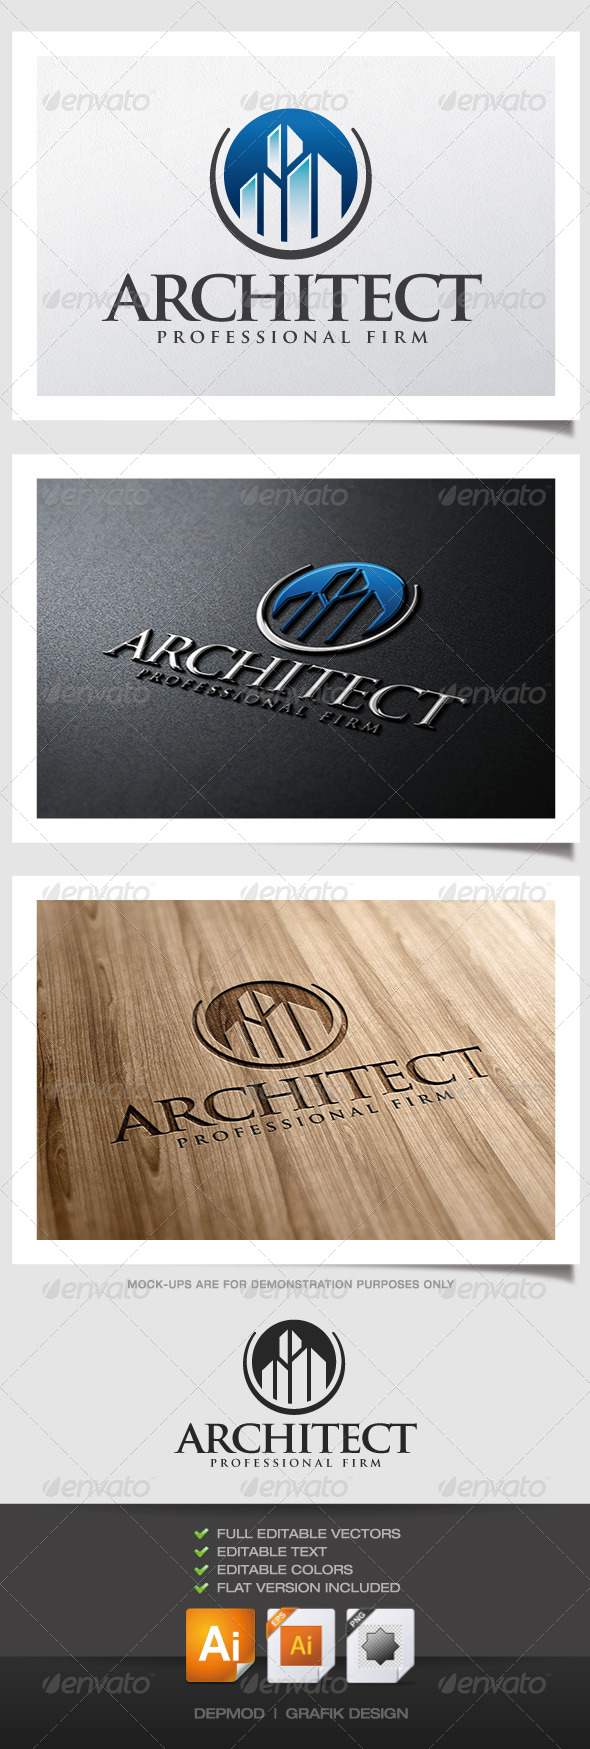 Architect Logo - Buildings Logo Templates